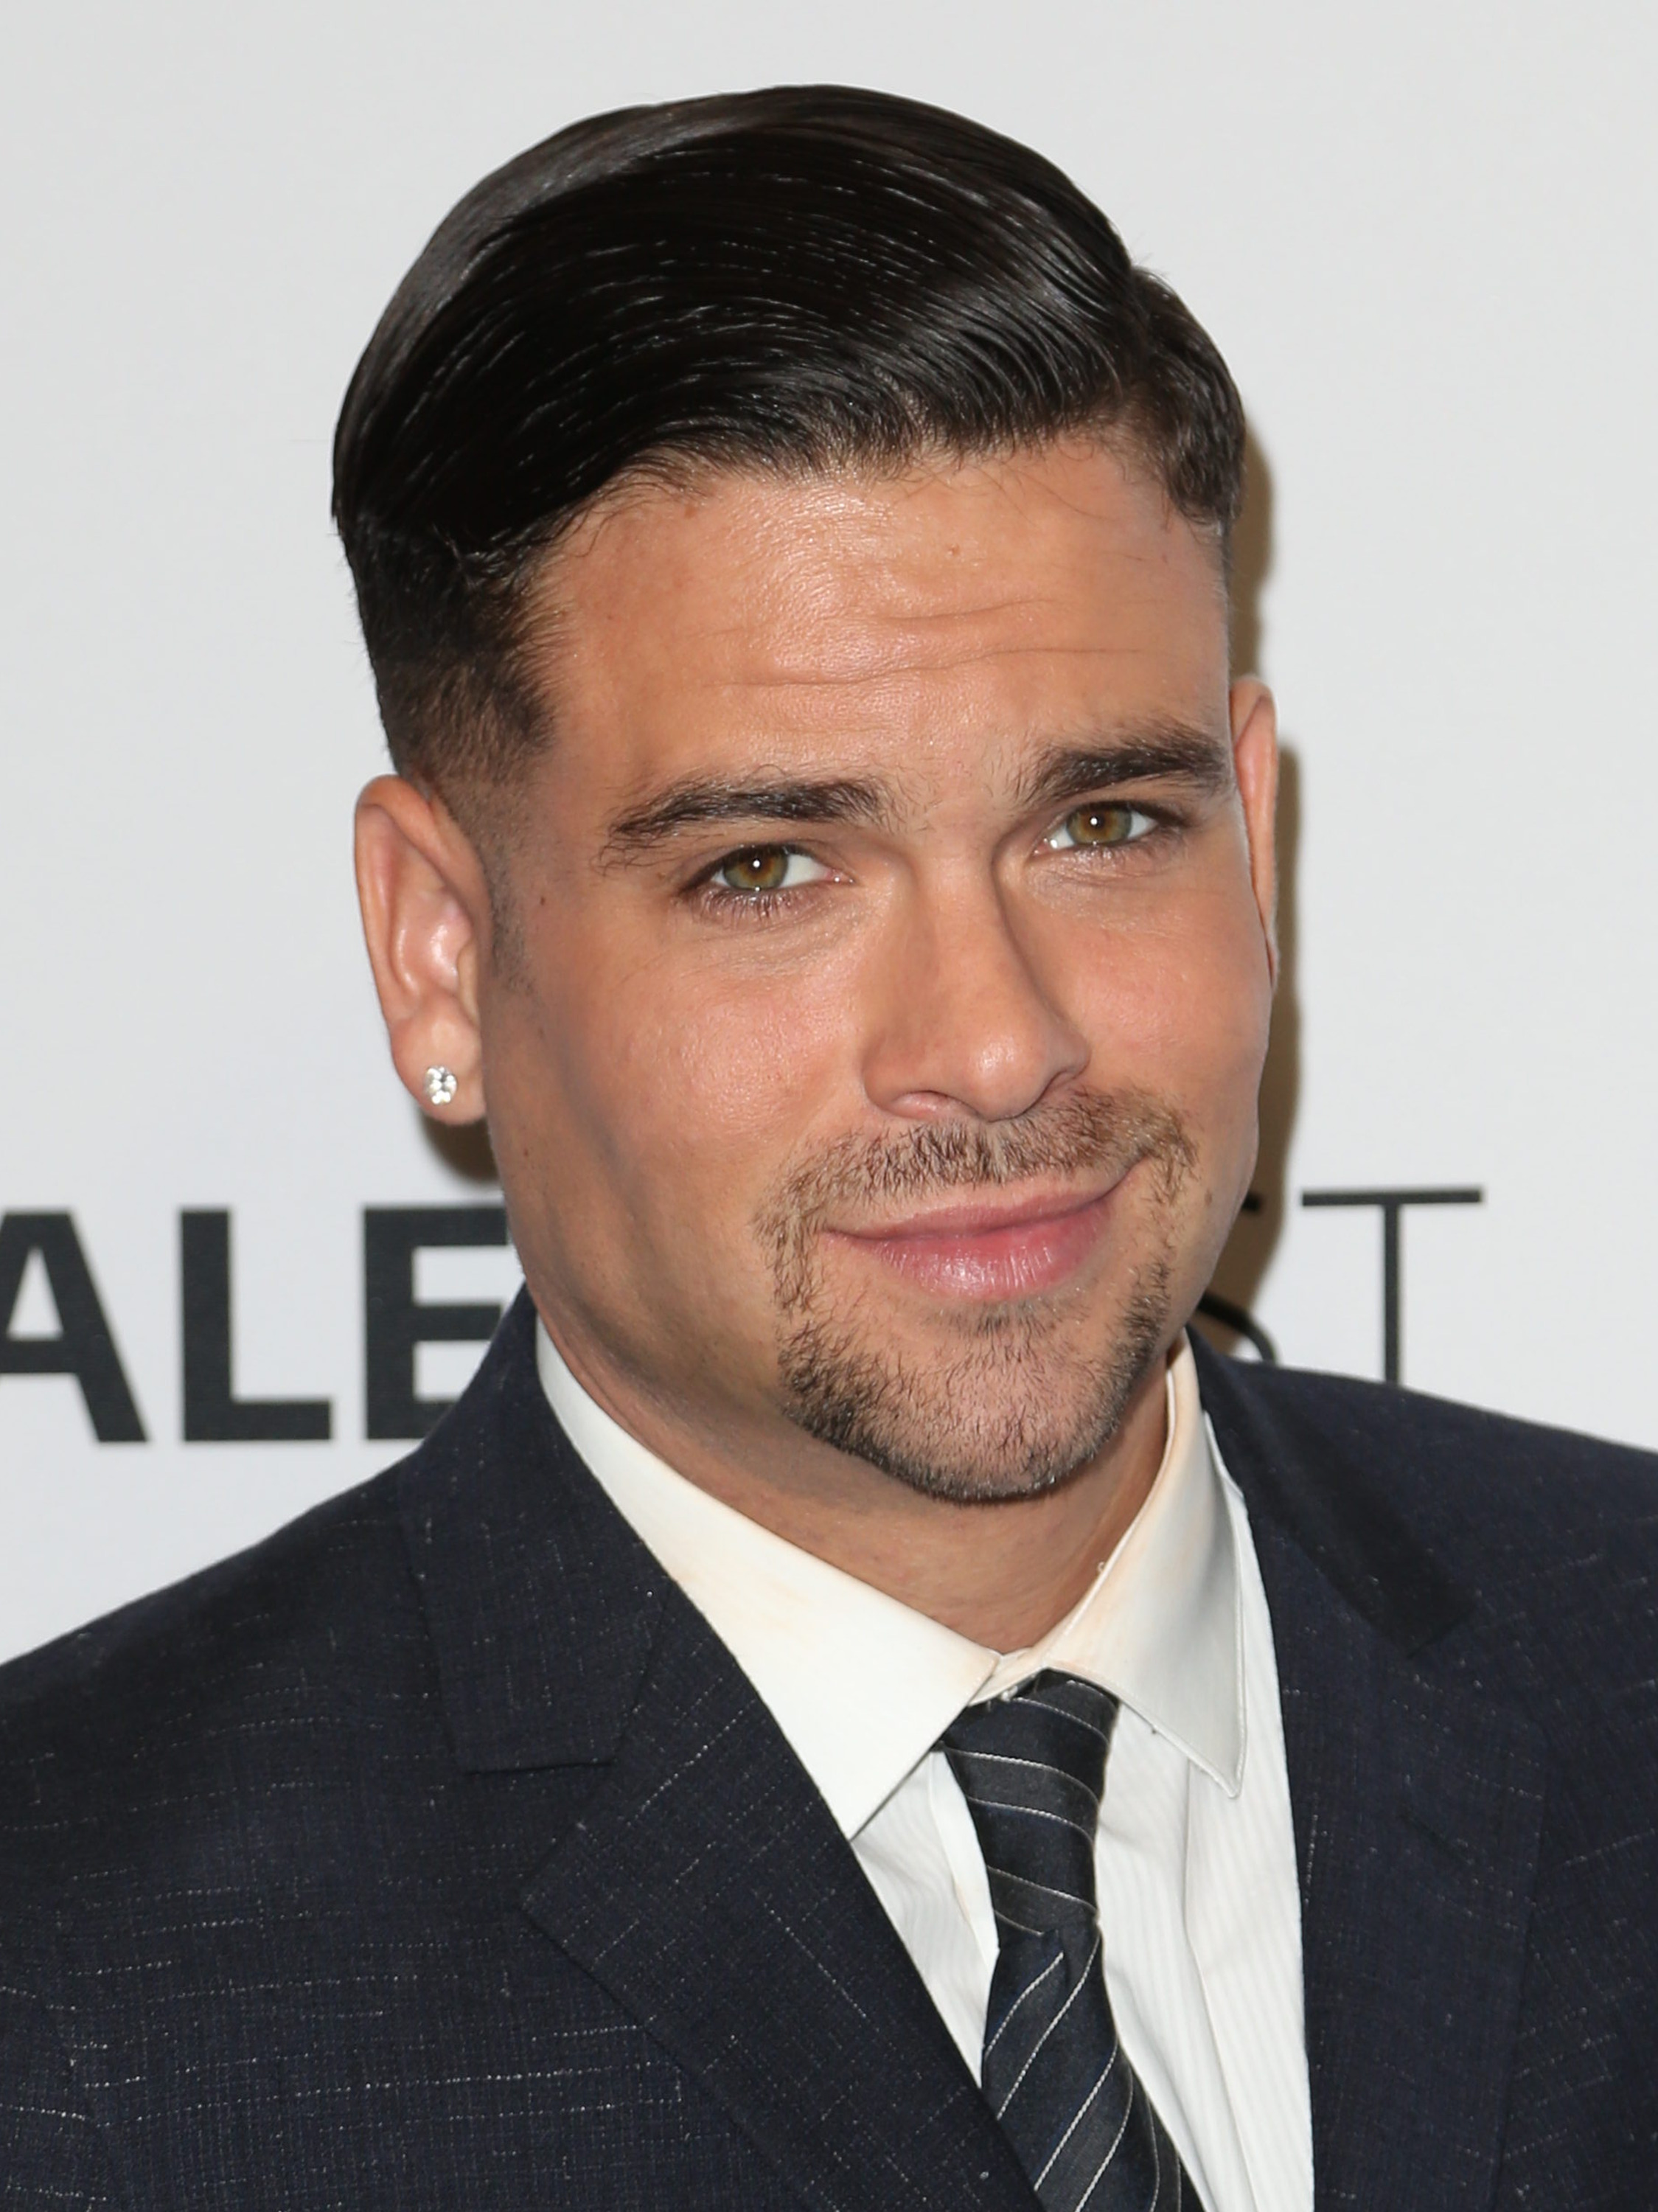 Mark Salling attends the Paley Center for Media's 32nd Annual PALEYFEST LA at Dolby Theatre in Hollywood, Calif. on March 13, 2015. (Brian To/WENN)